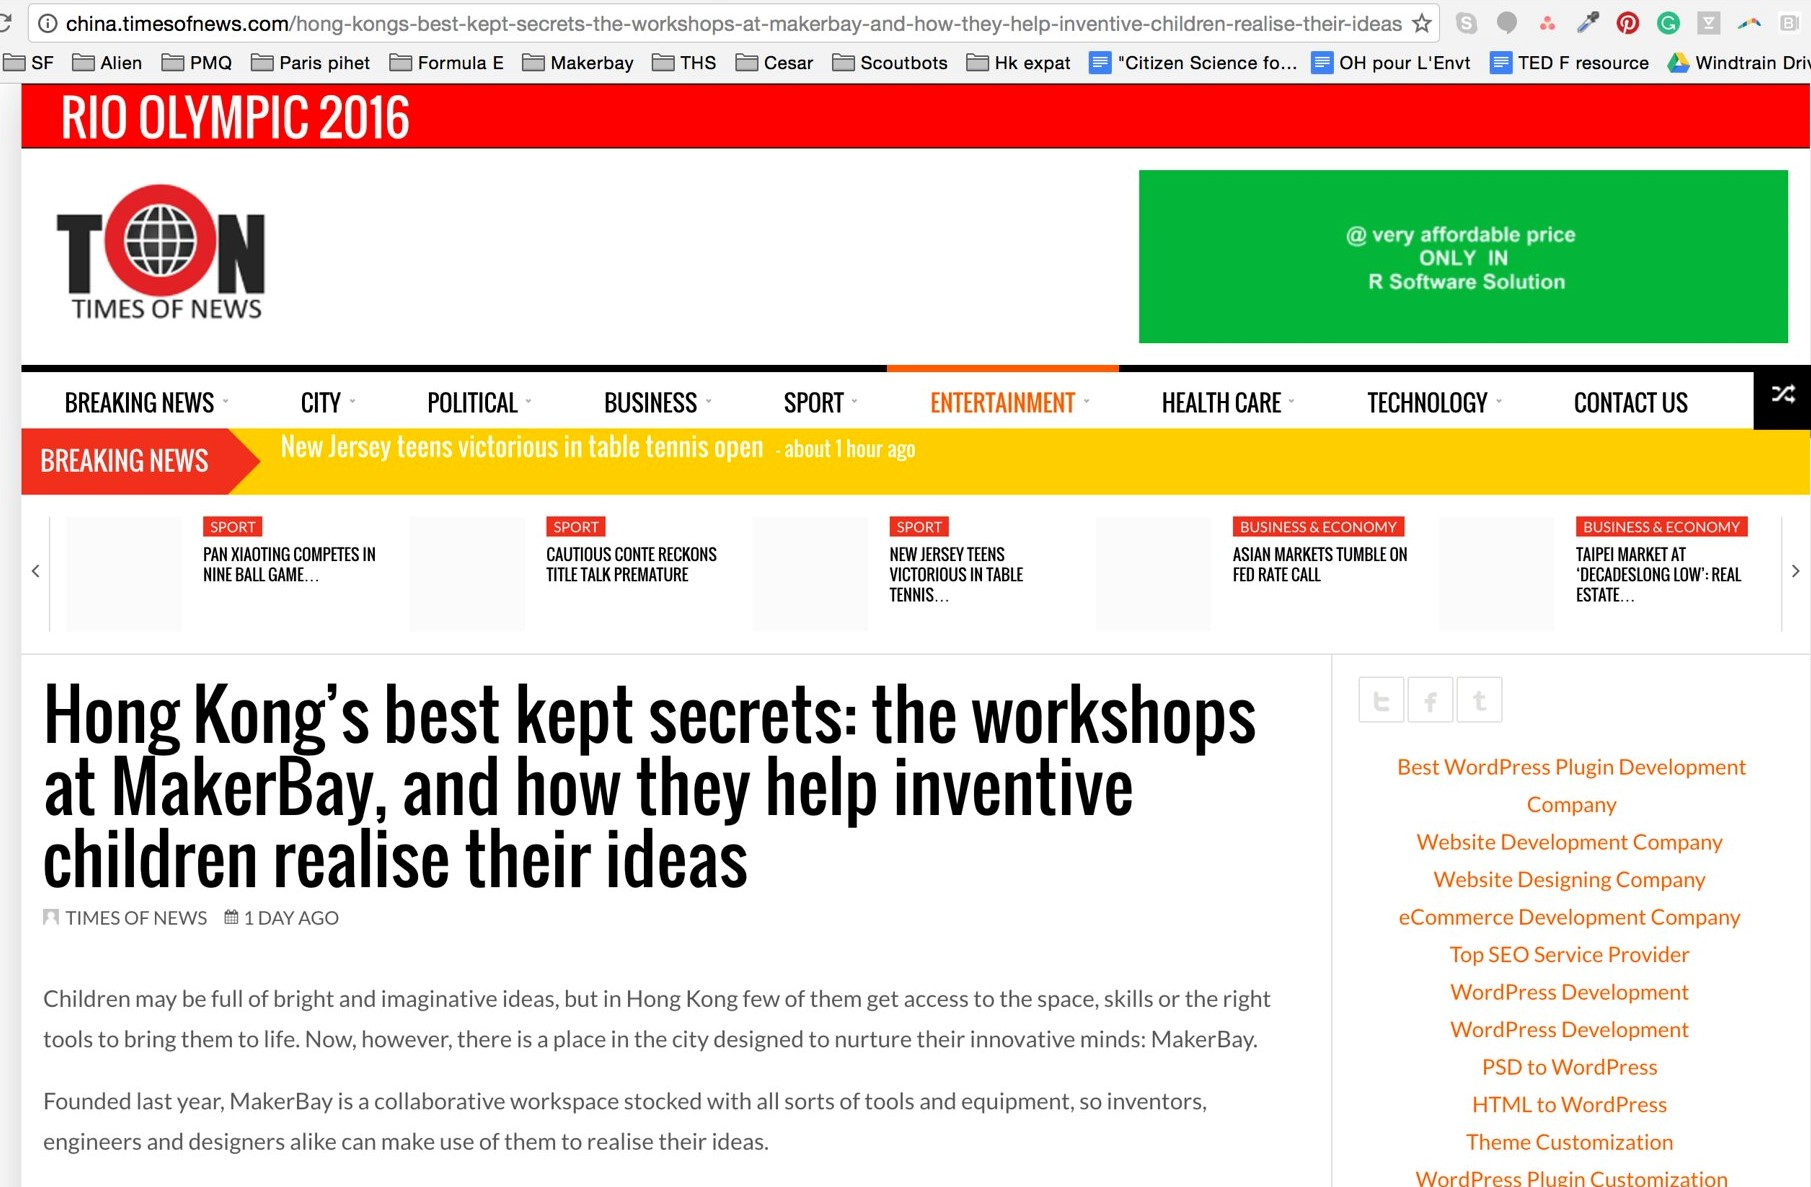 """""""Hong Kong's best kept secrets: the workshops at MakerBay, and how they help inventive children realise their ideas"""